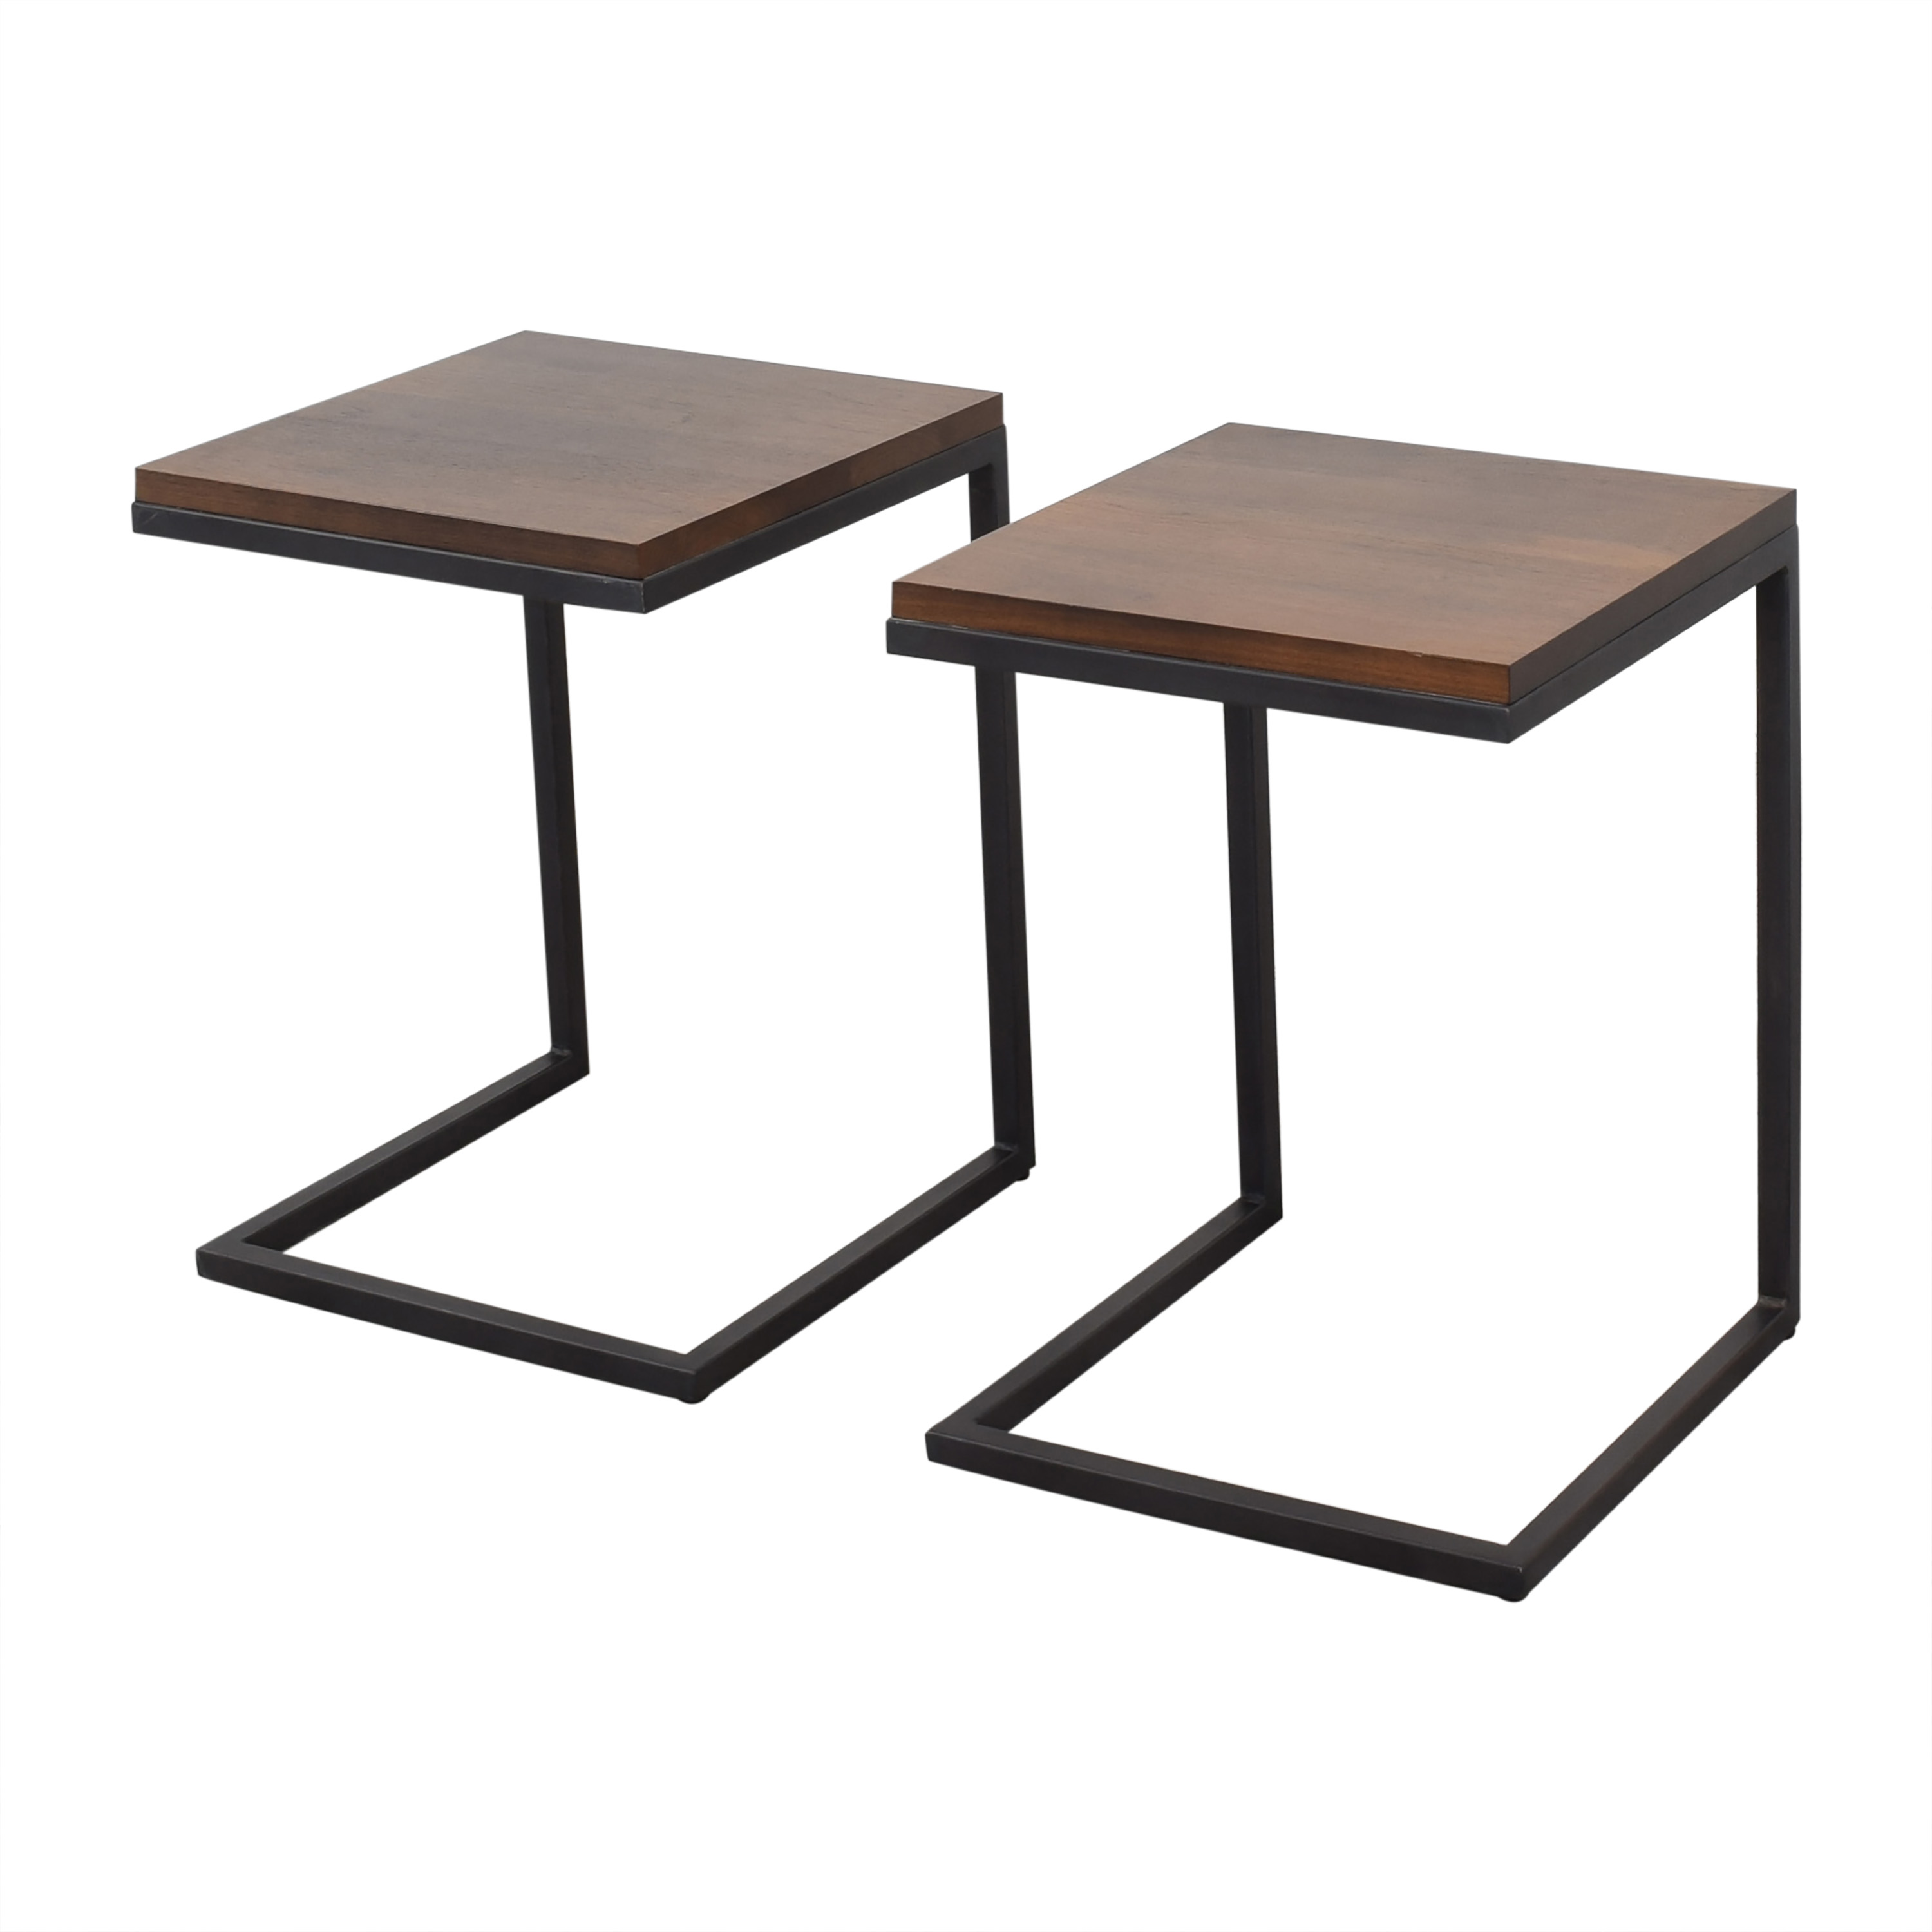 Room & Board Room & Board Parsons C-Tables price